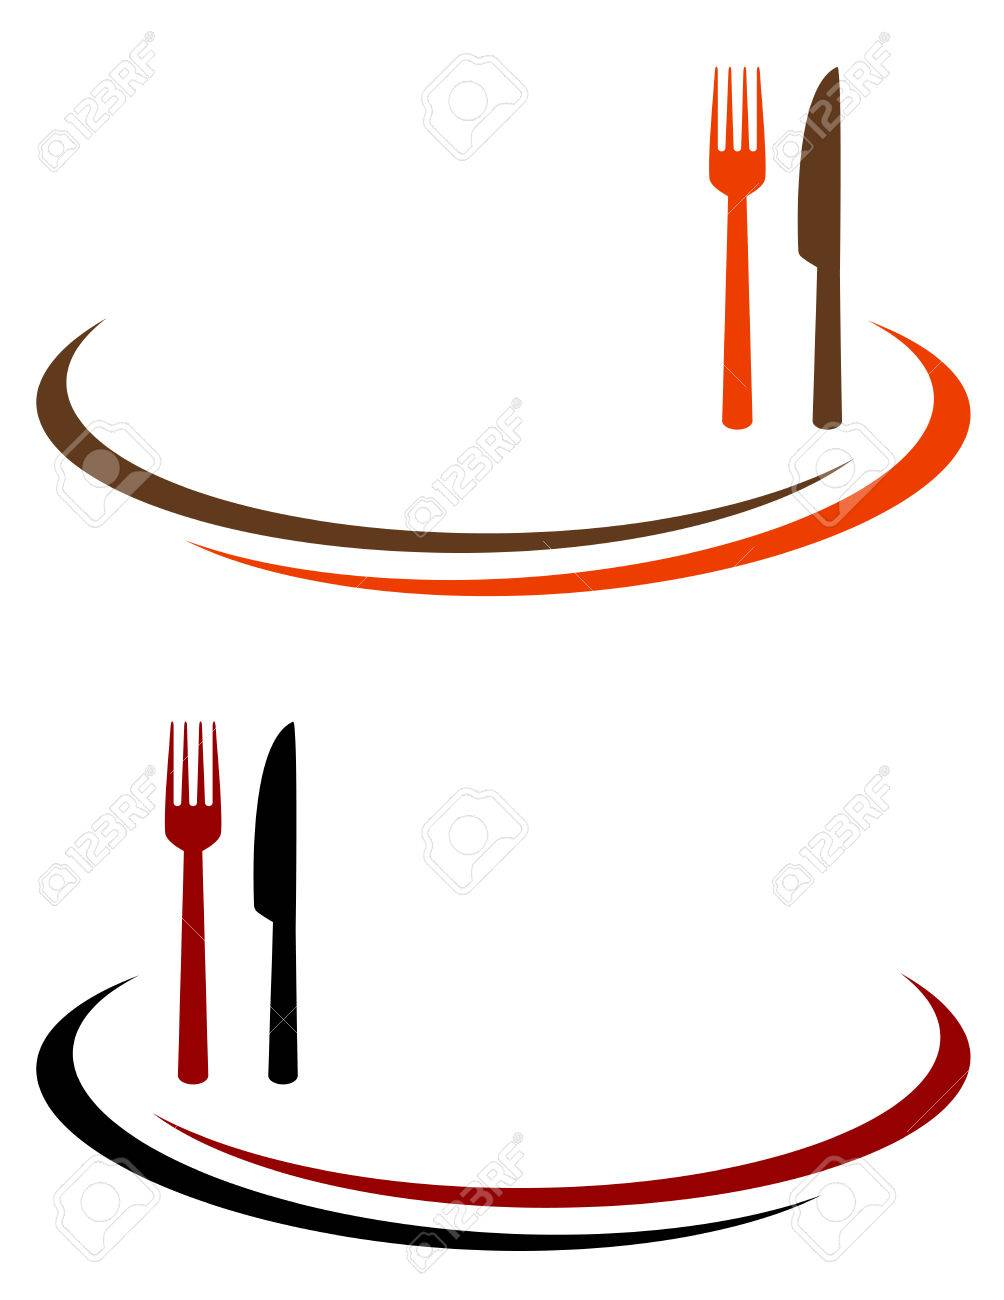 restaurant background with cutlery and place for text - 33871460